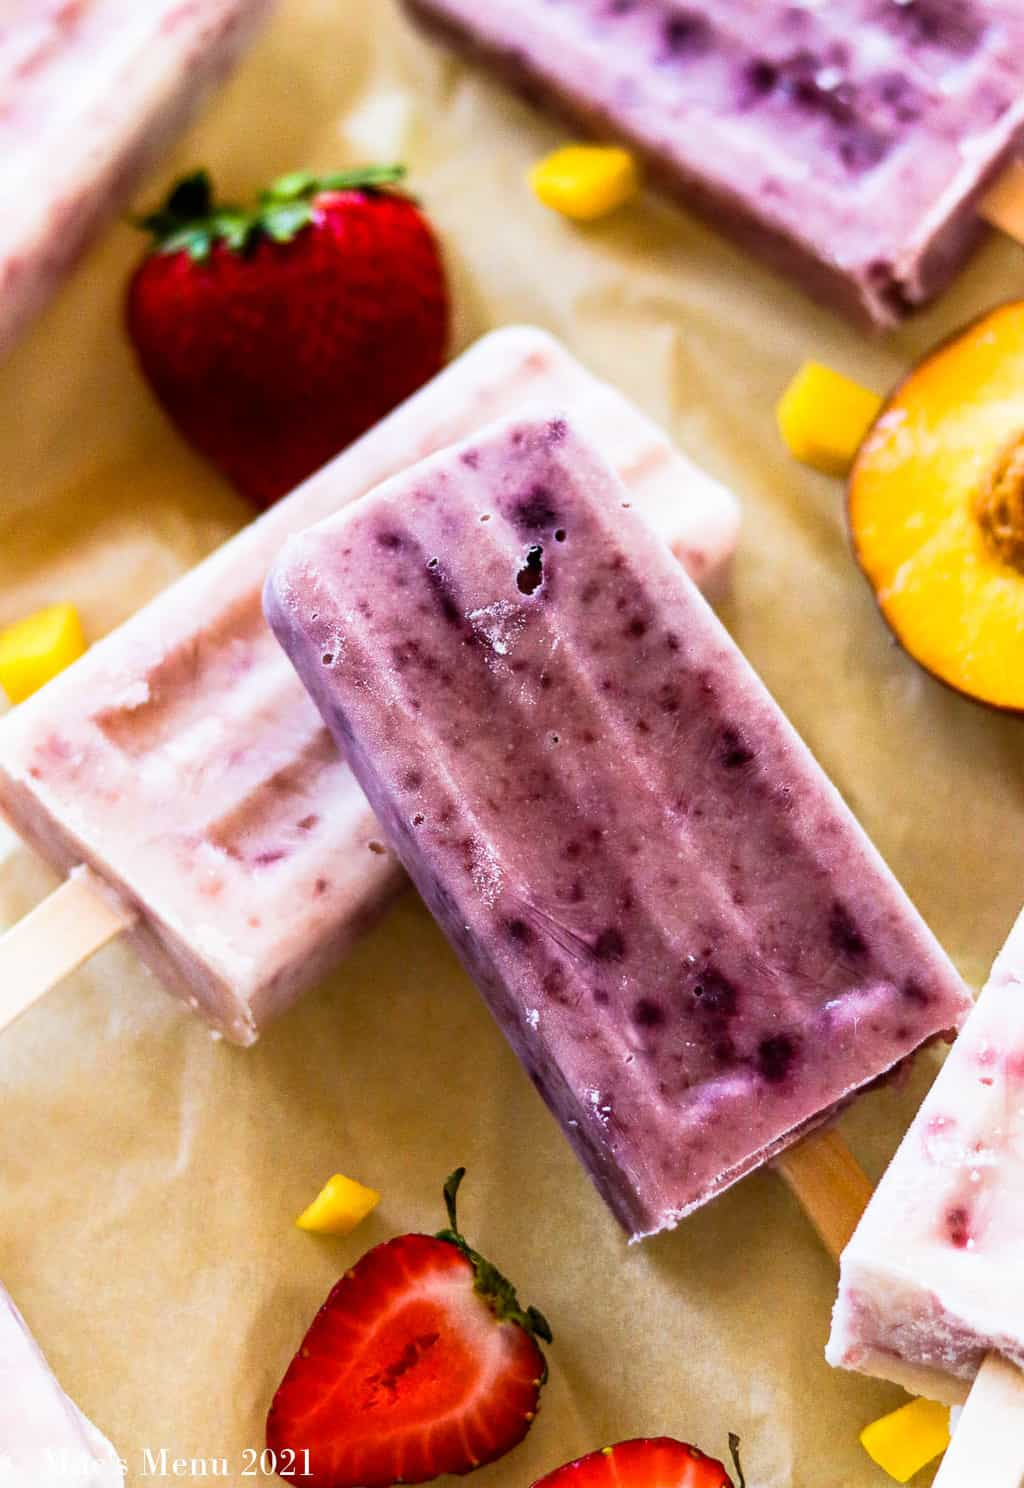 Two popsicles laying on a sheet of parchment paper surrounded by fruit